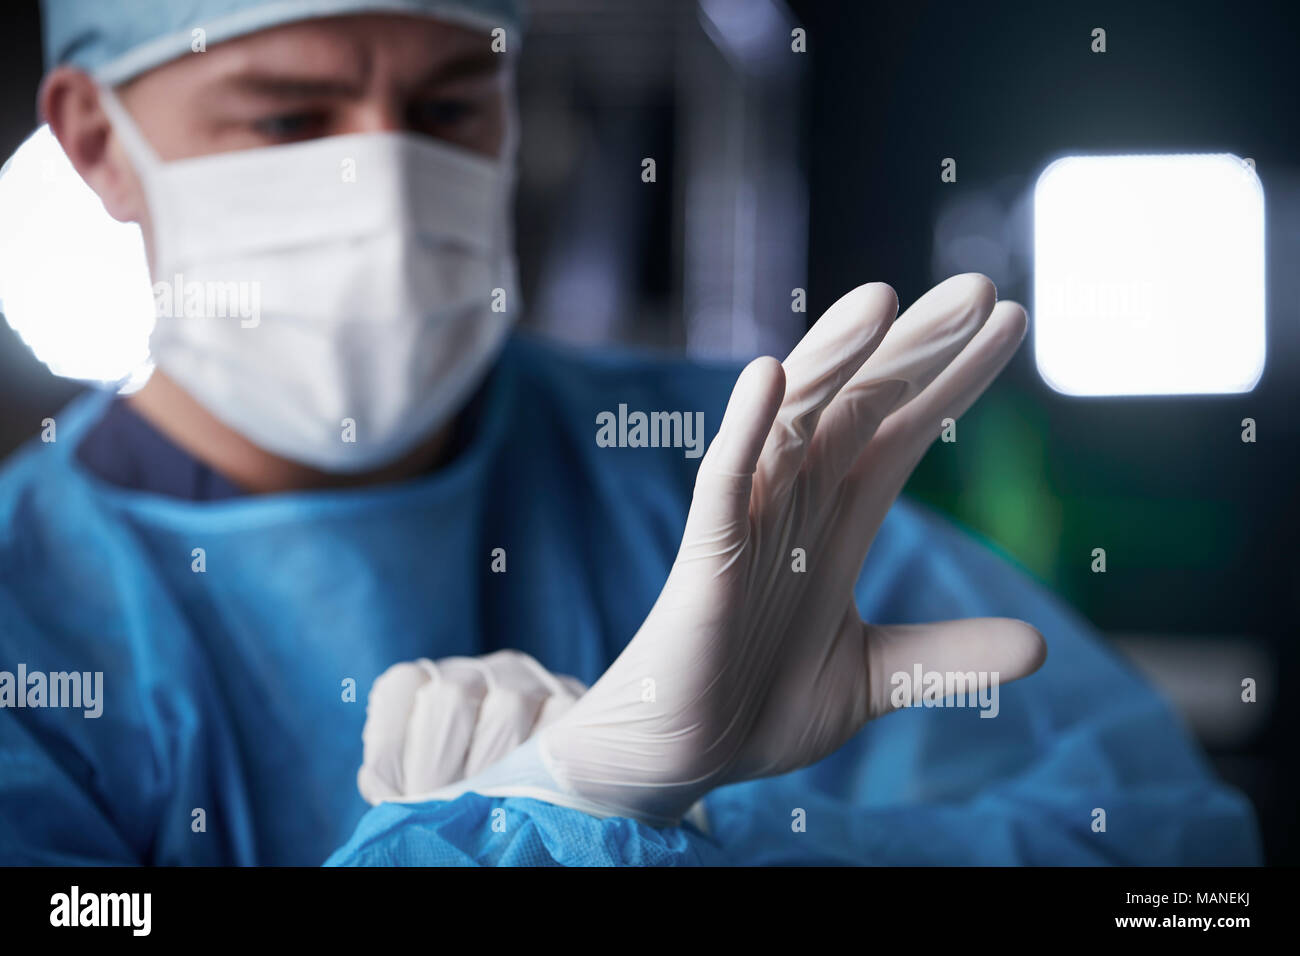 Male surgeon putting on latex gloves in preparation - Stock Image